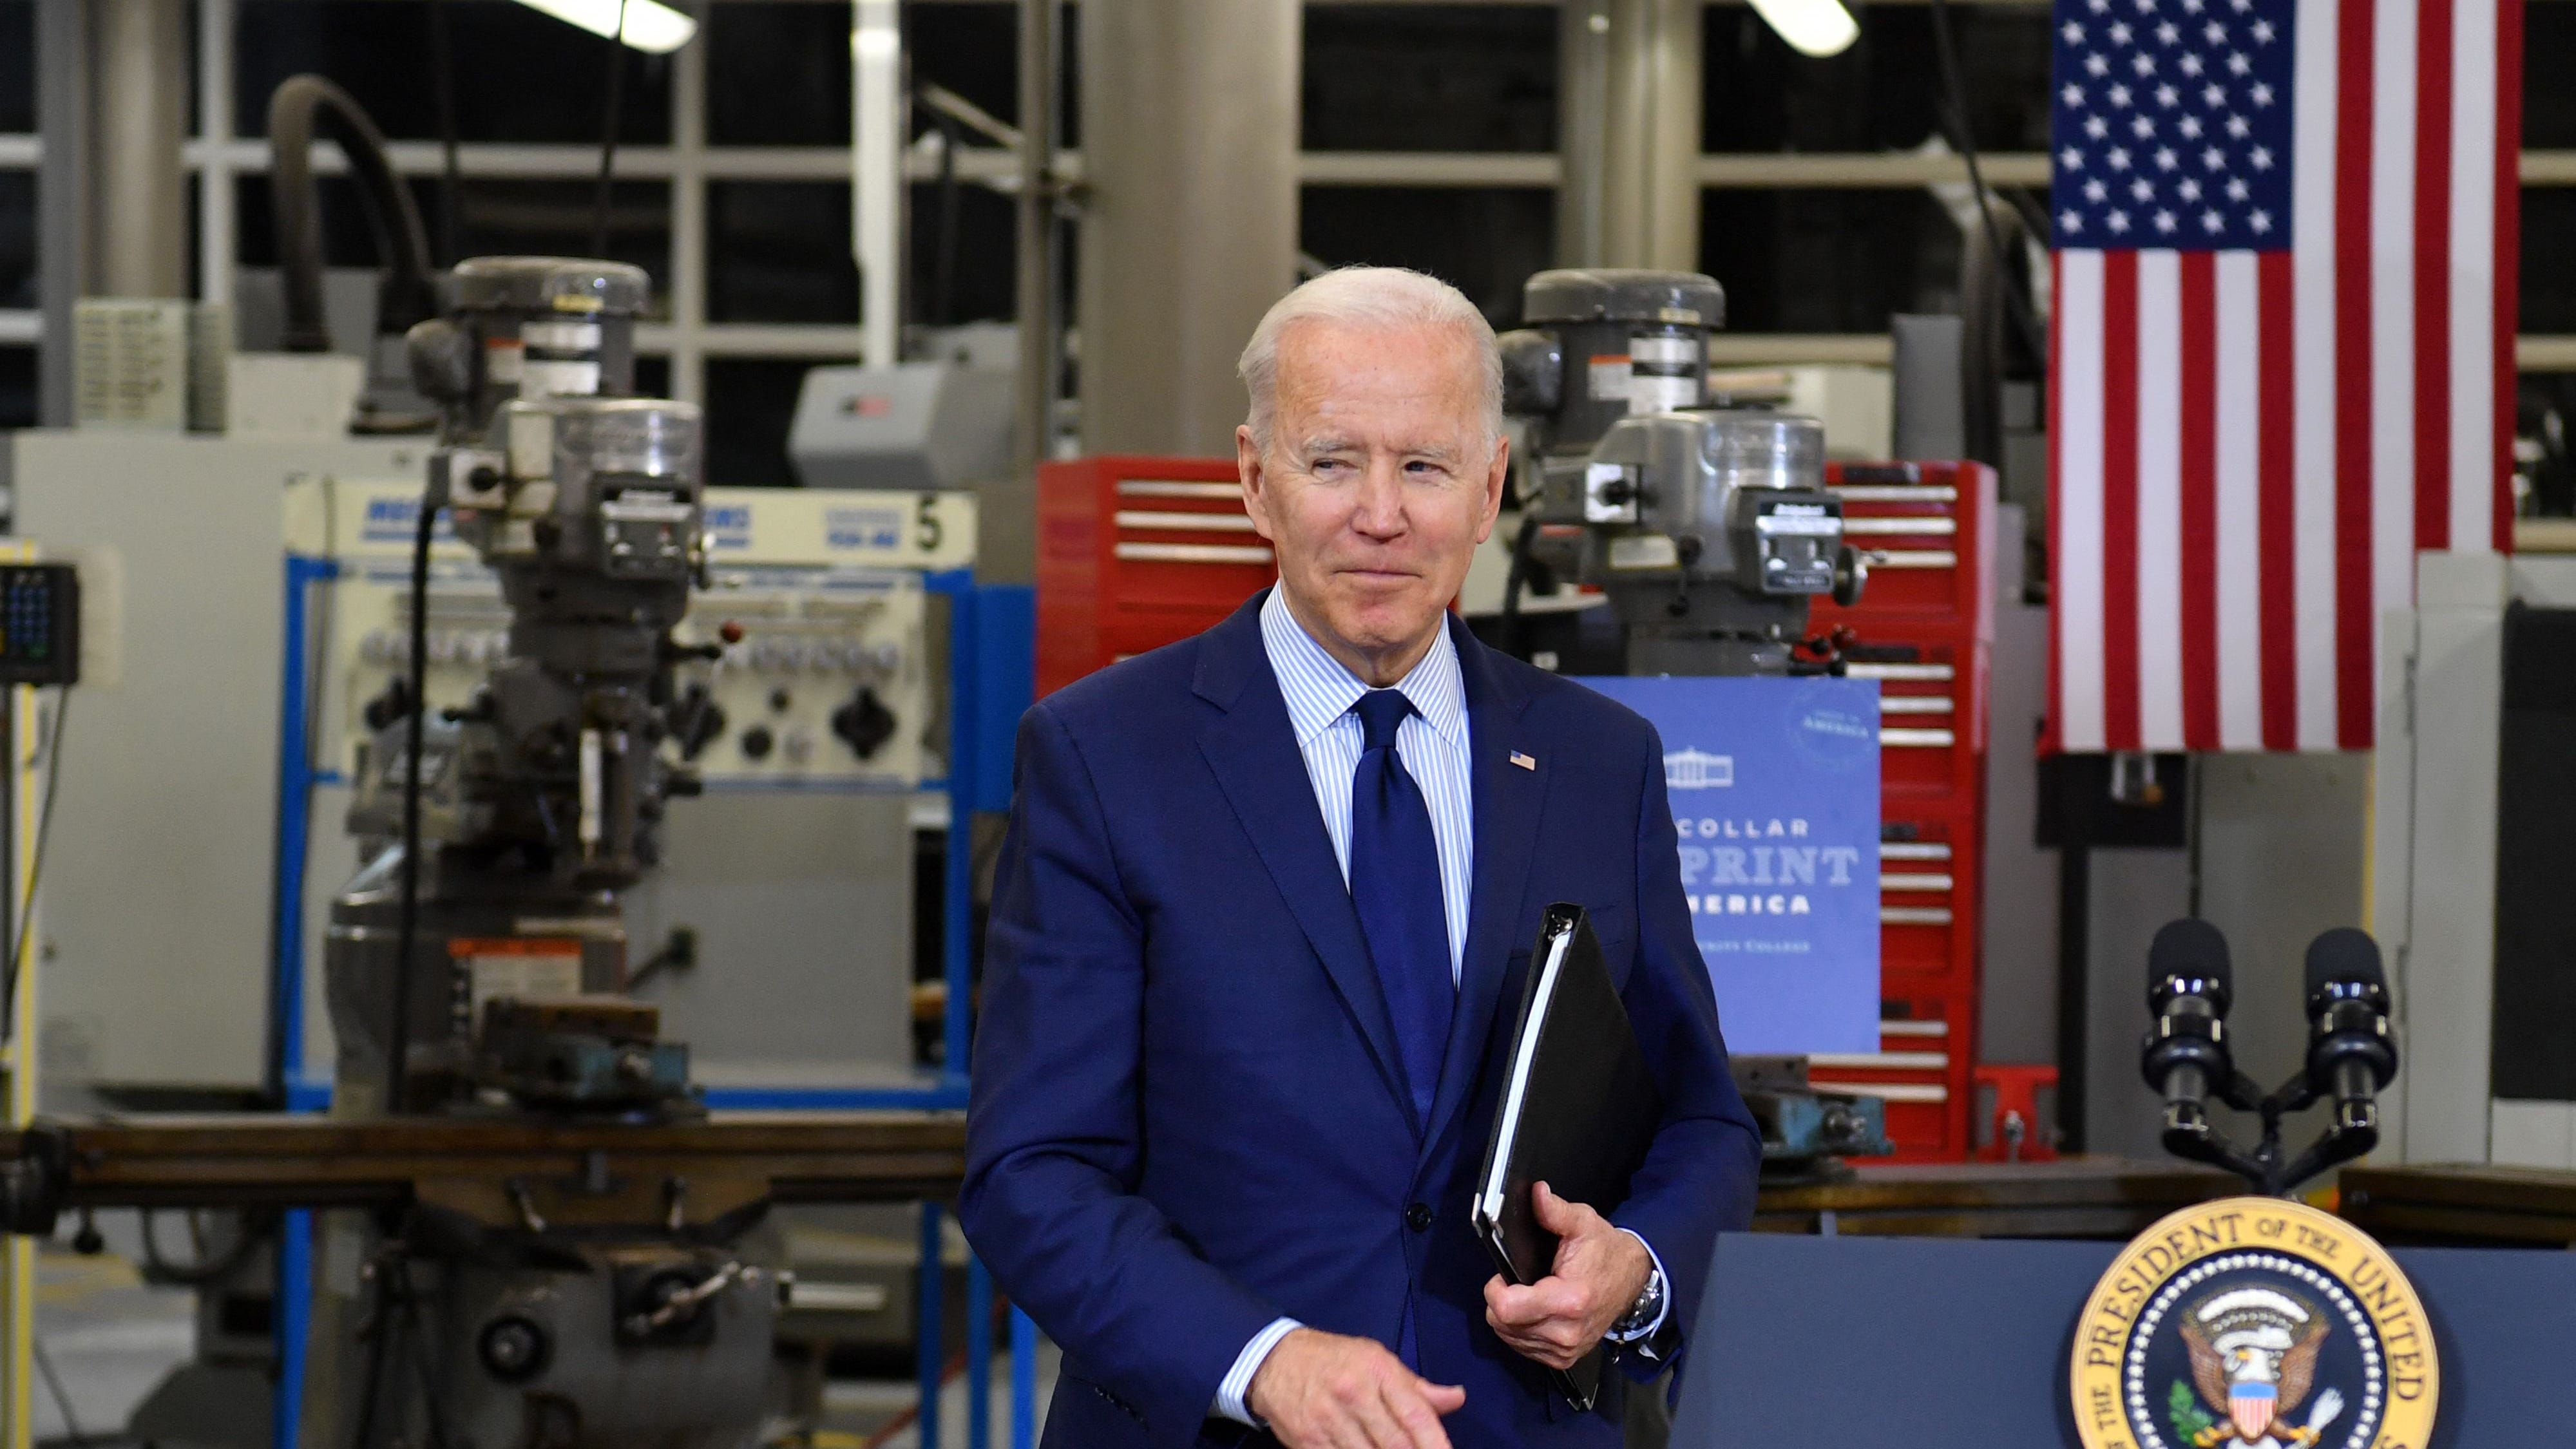 US President Joe Biden looks on after speaking on the economy at Cuyahoga Community College Manufacturing Technology Center, on May 27, 2021, in Cleveland, Ohio.